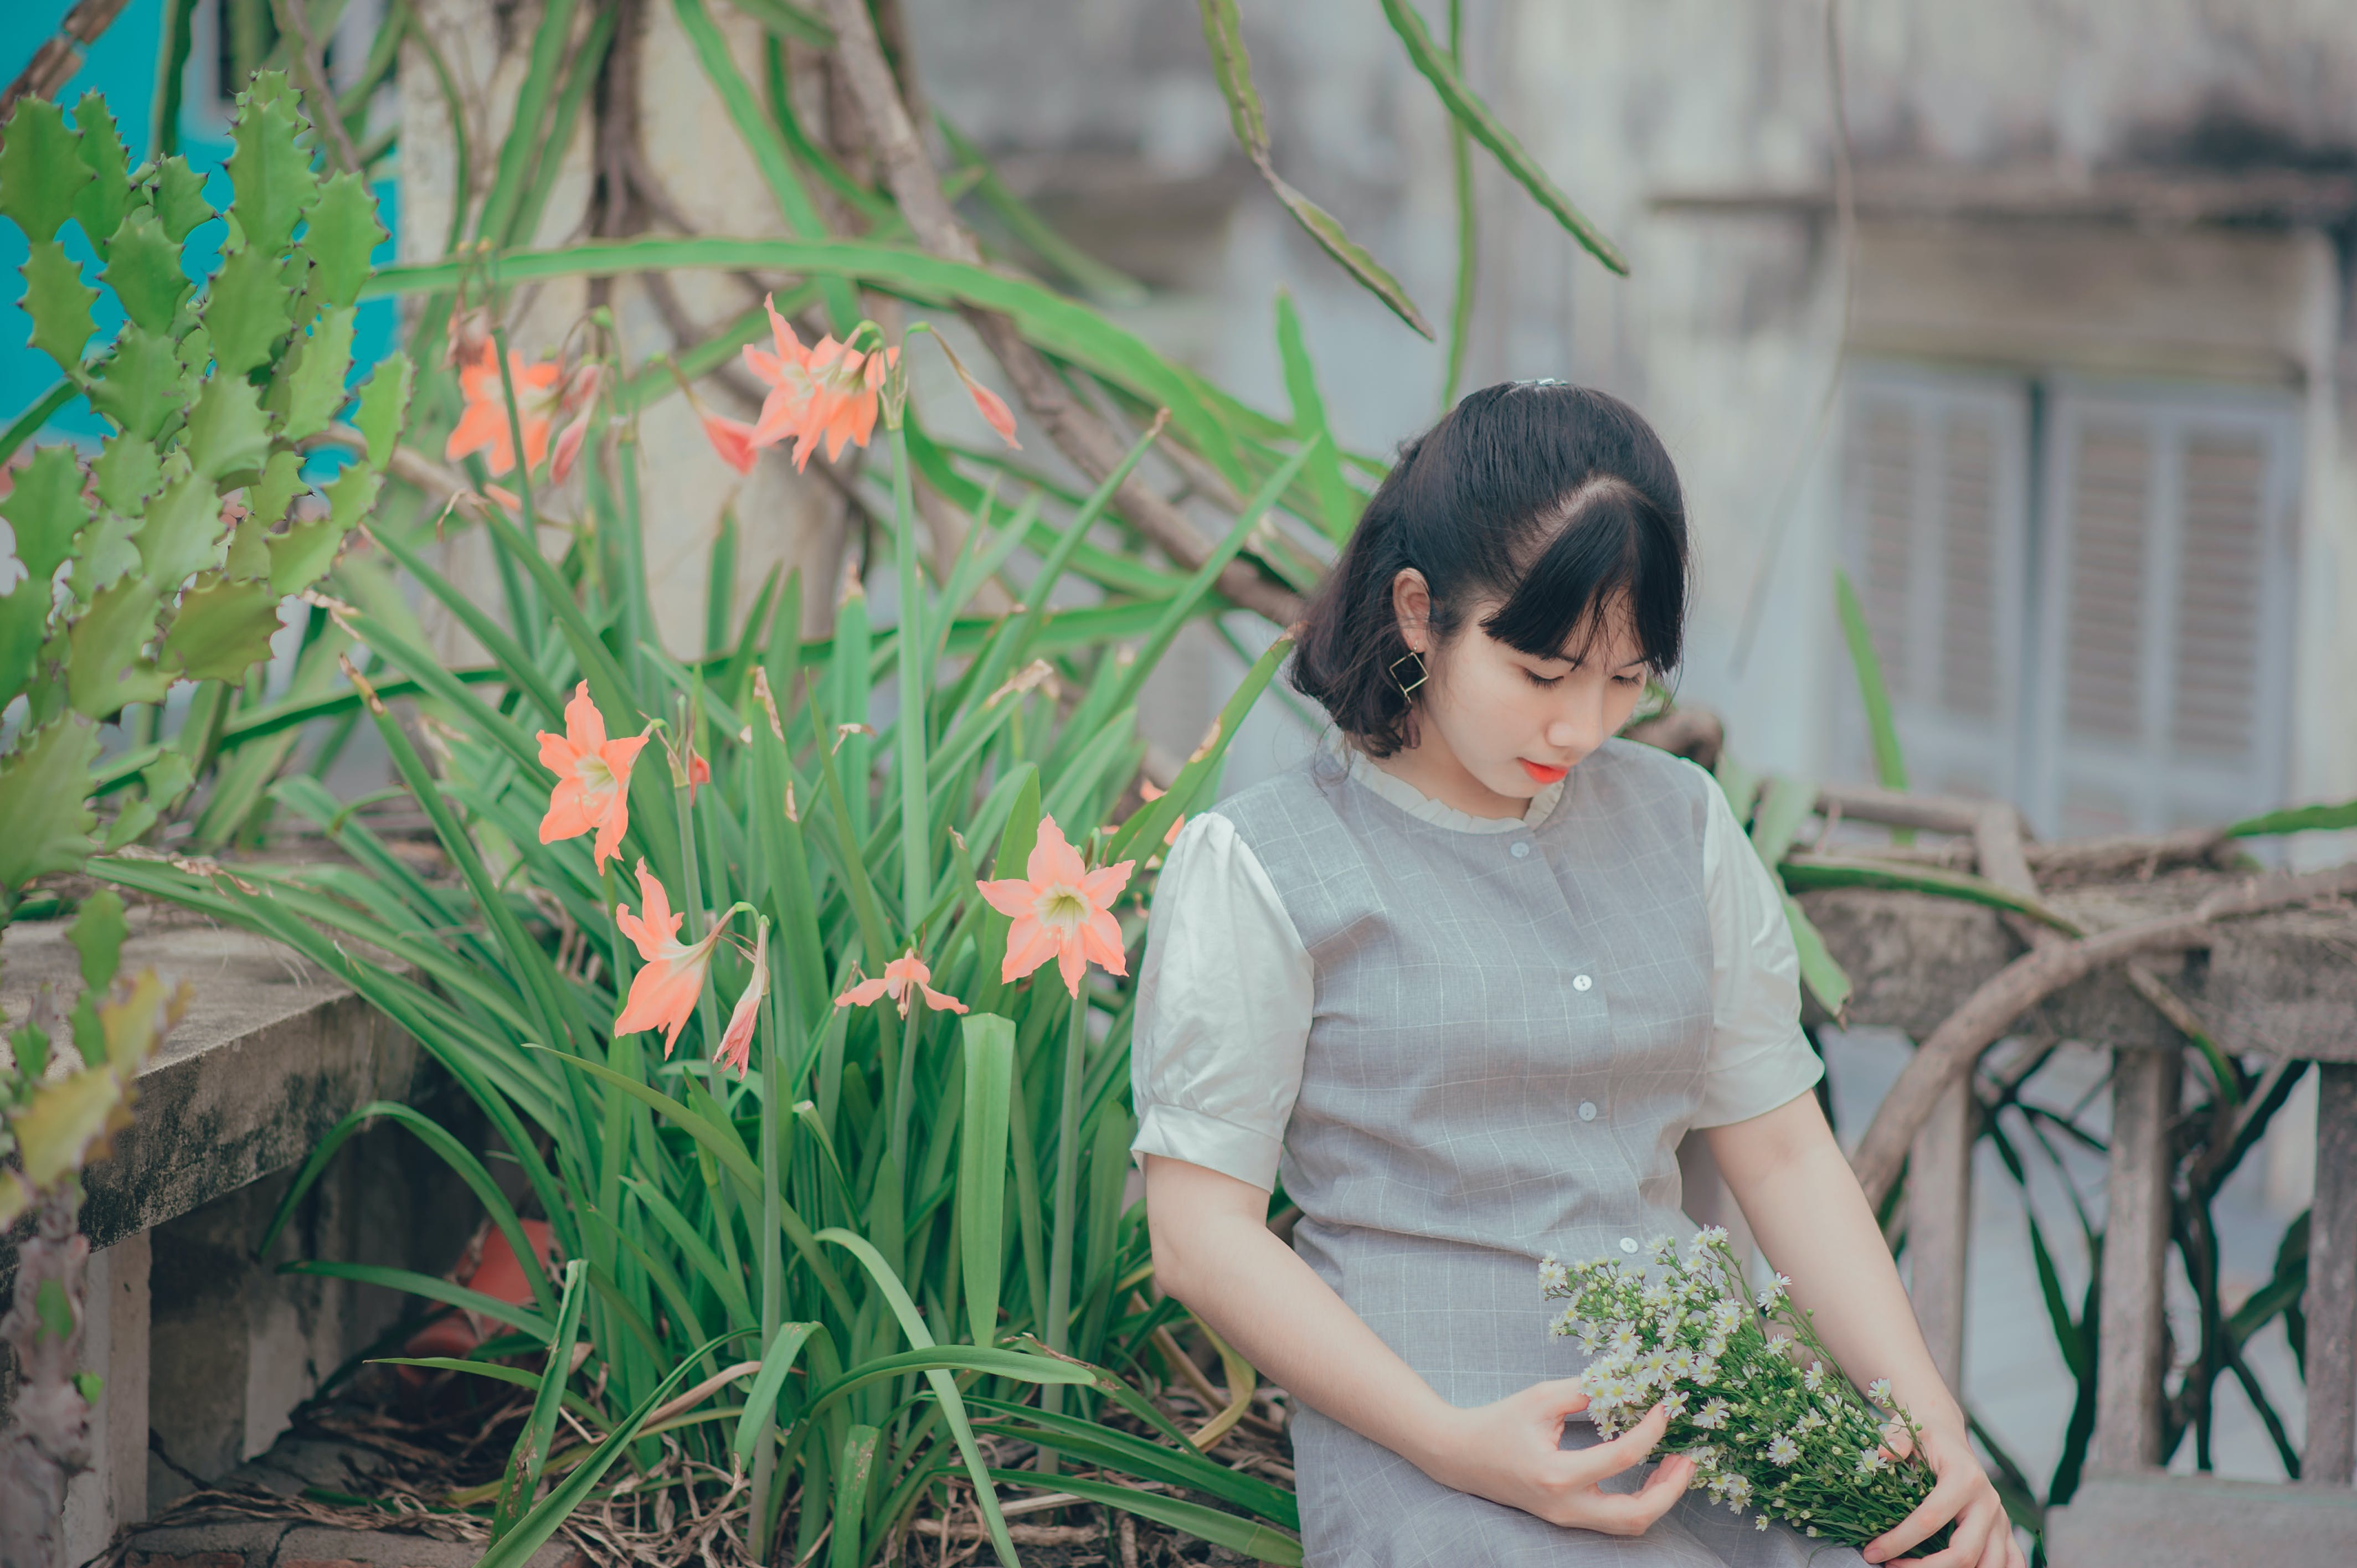 Woman Sitting Beside Pink Petaled Flower While Holding Bouquet of Flower